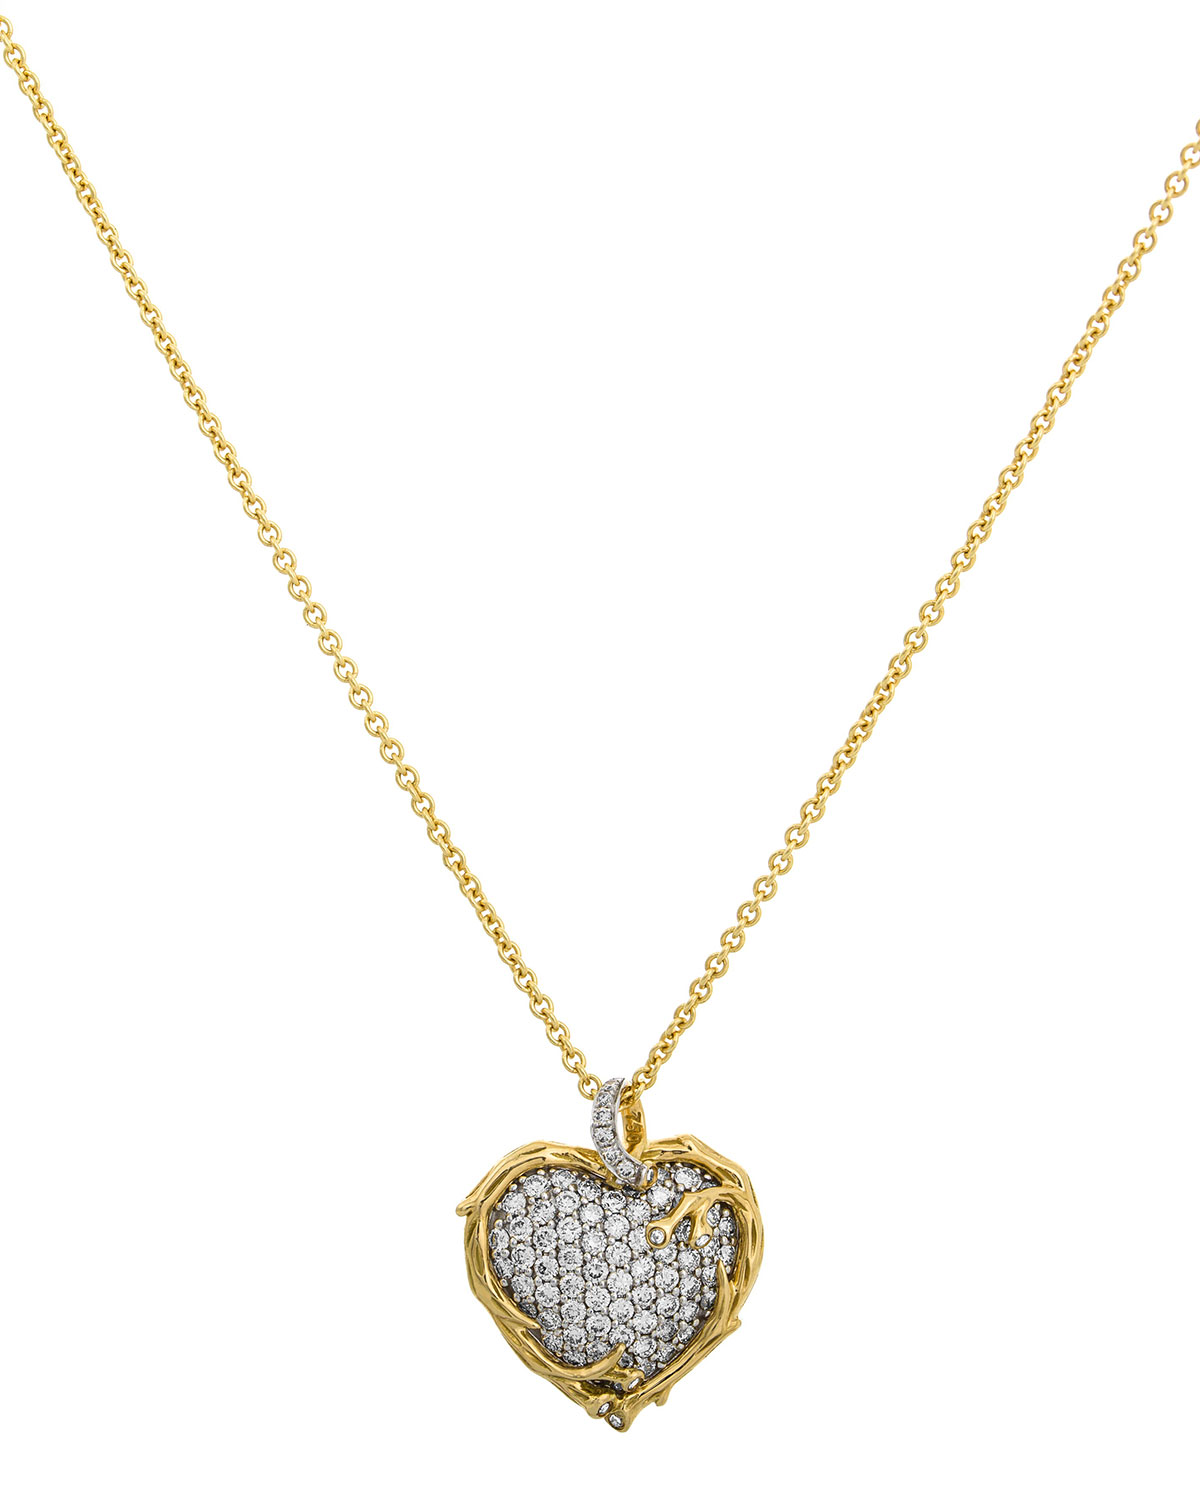 18k Enchanted Forest Twig Heart Necklace w/ Diamonds